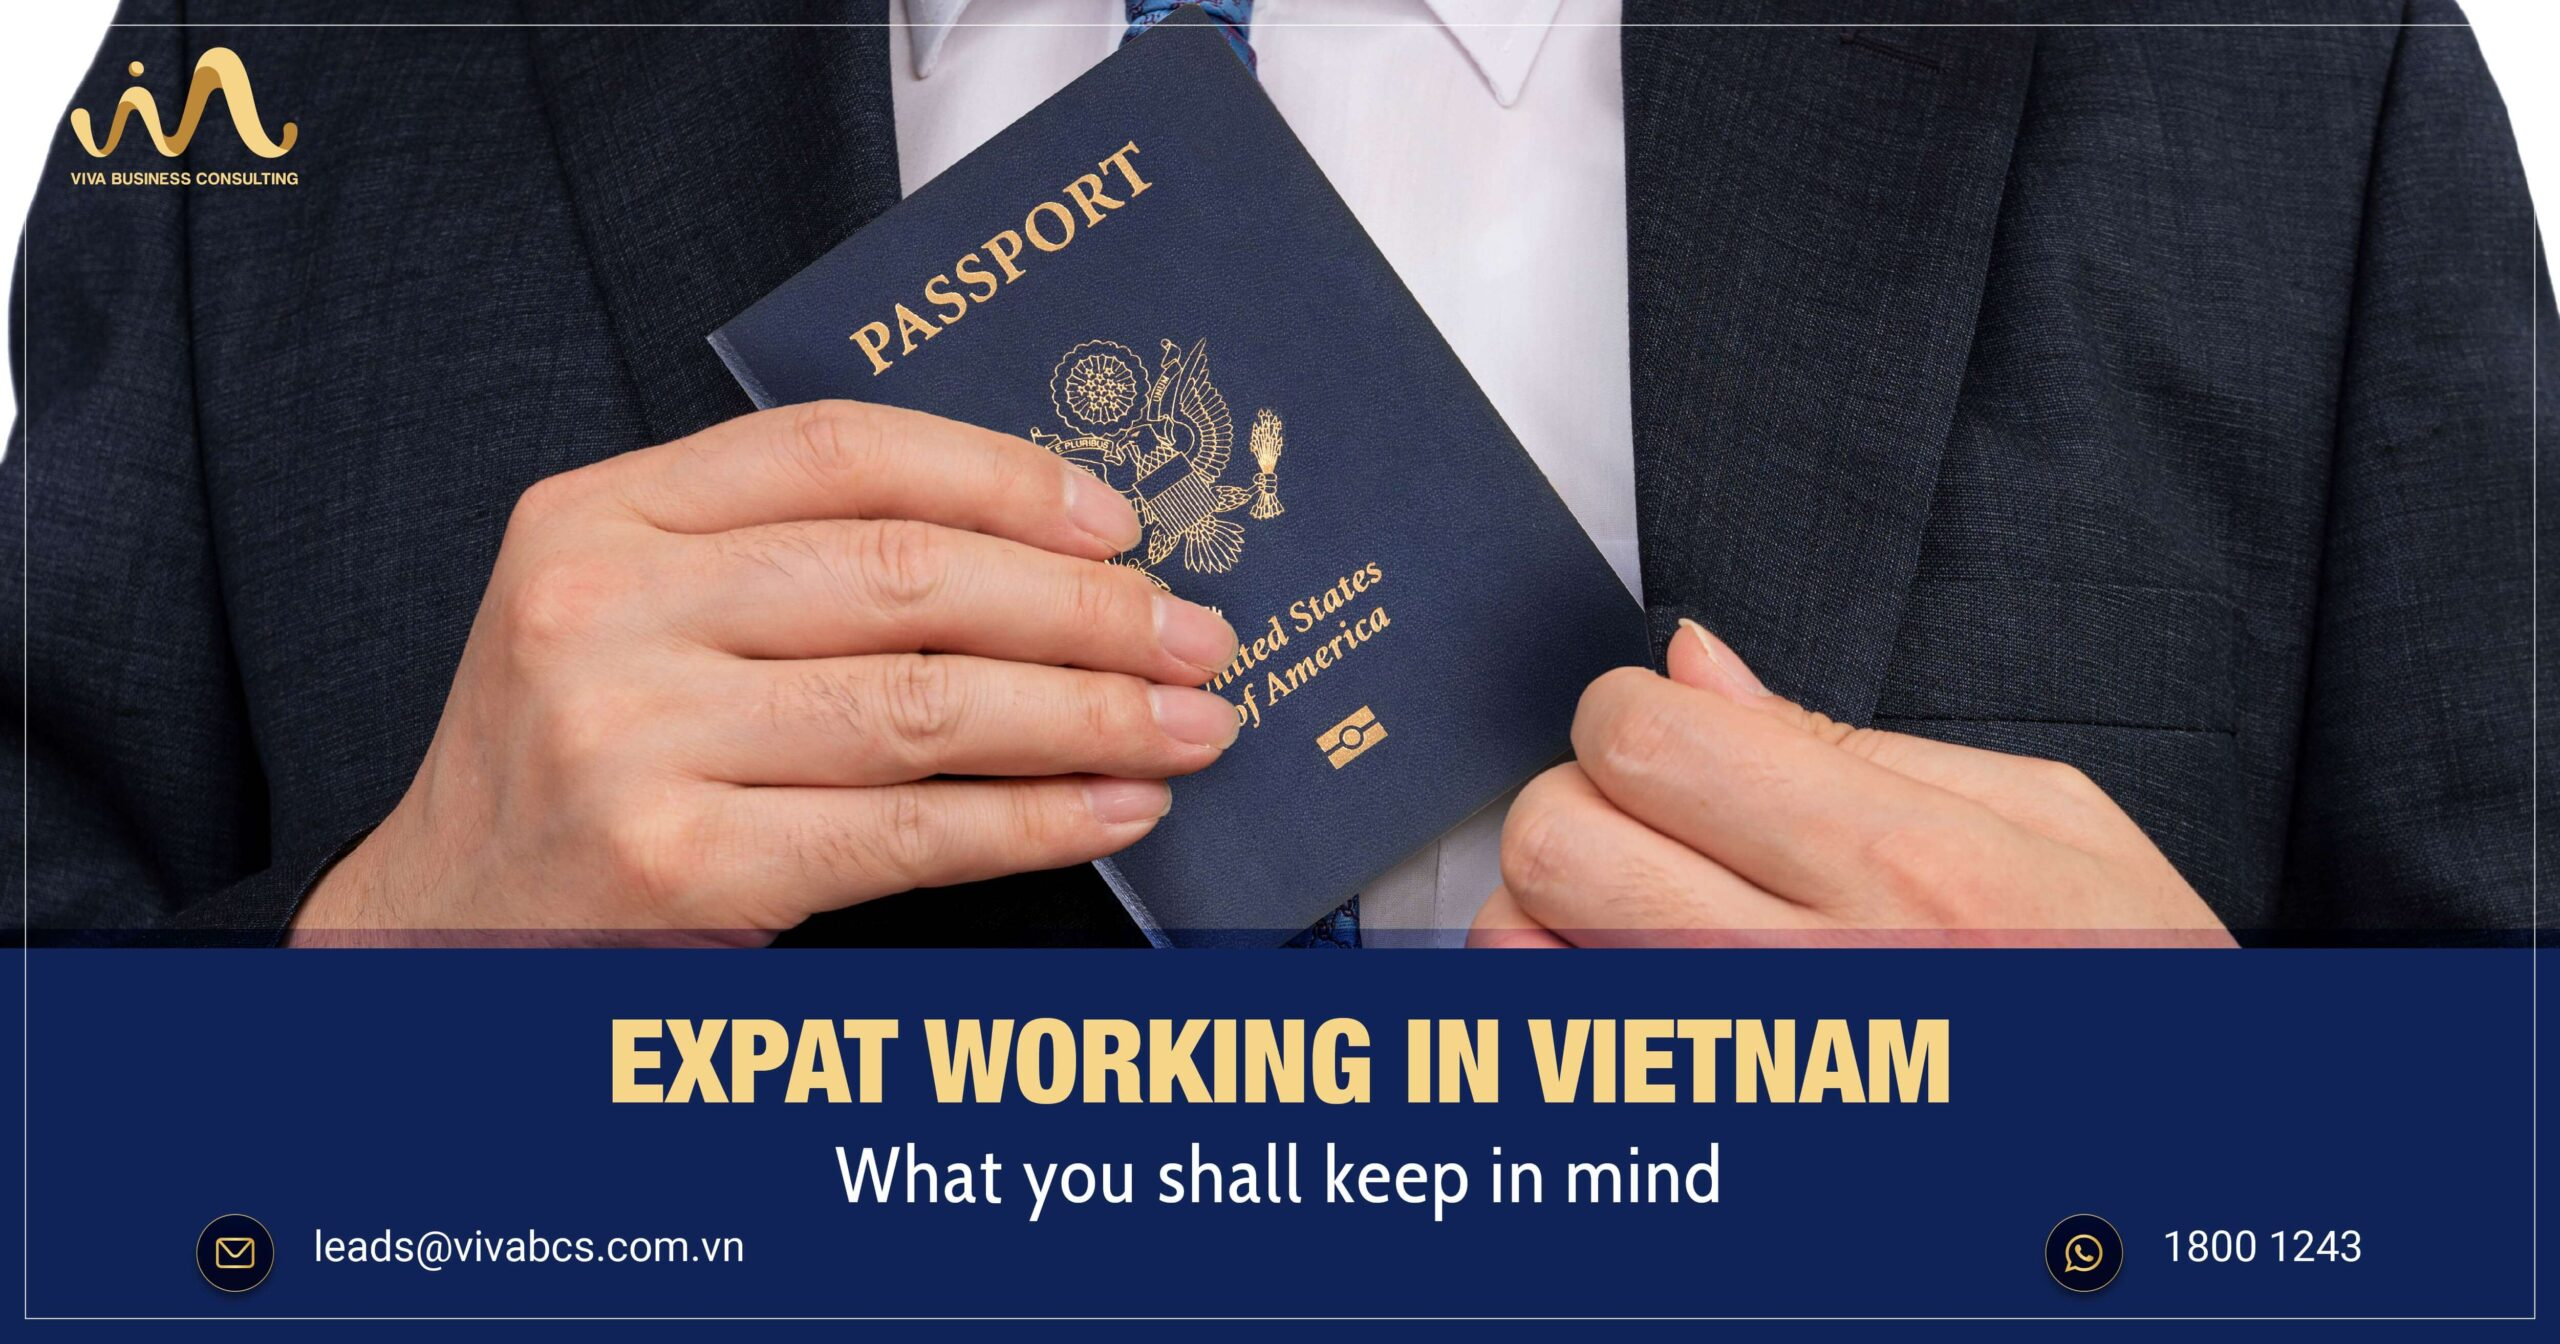 Required documents for foreign employees in Vietnam